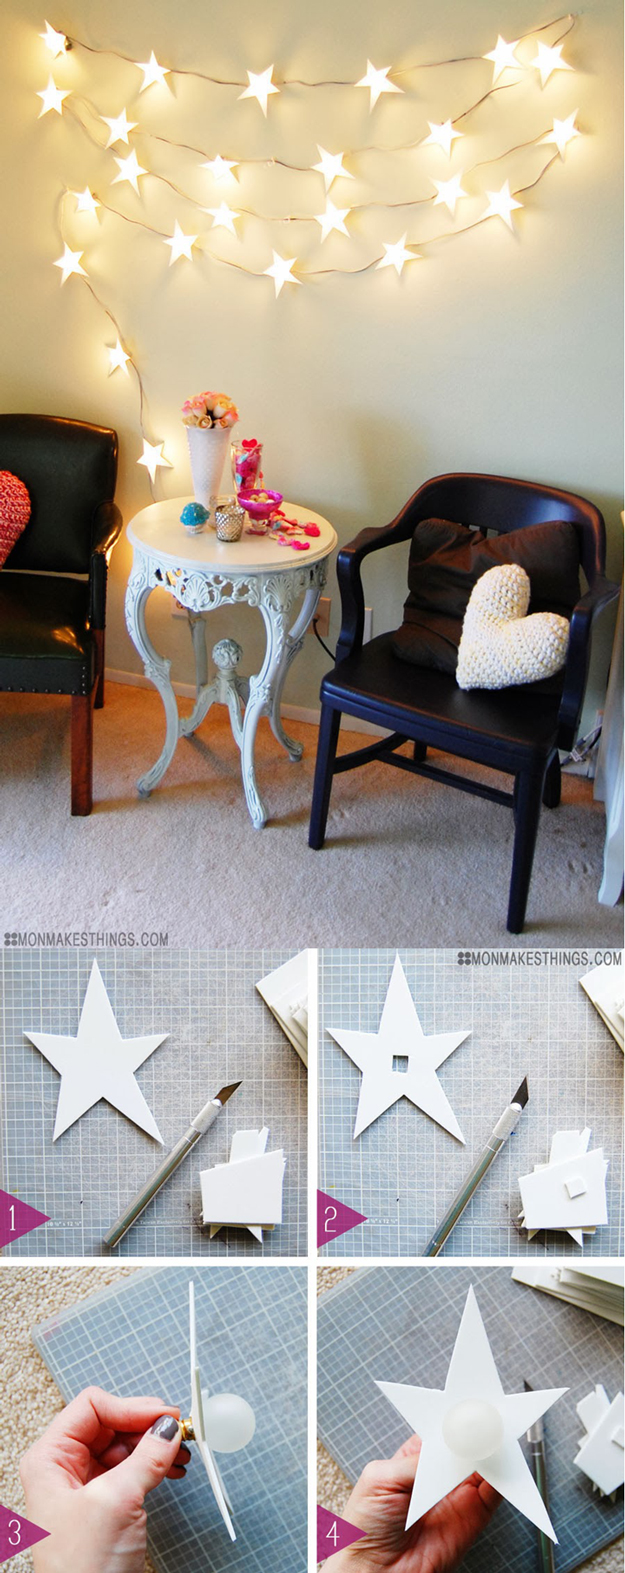 string light diy ideas for cool home decor star garland christmas light diy are fun - Diy Home Decor Ideas Bedroom